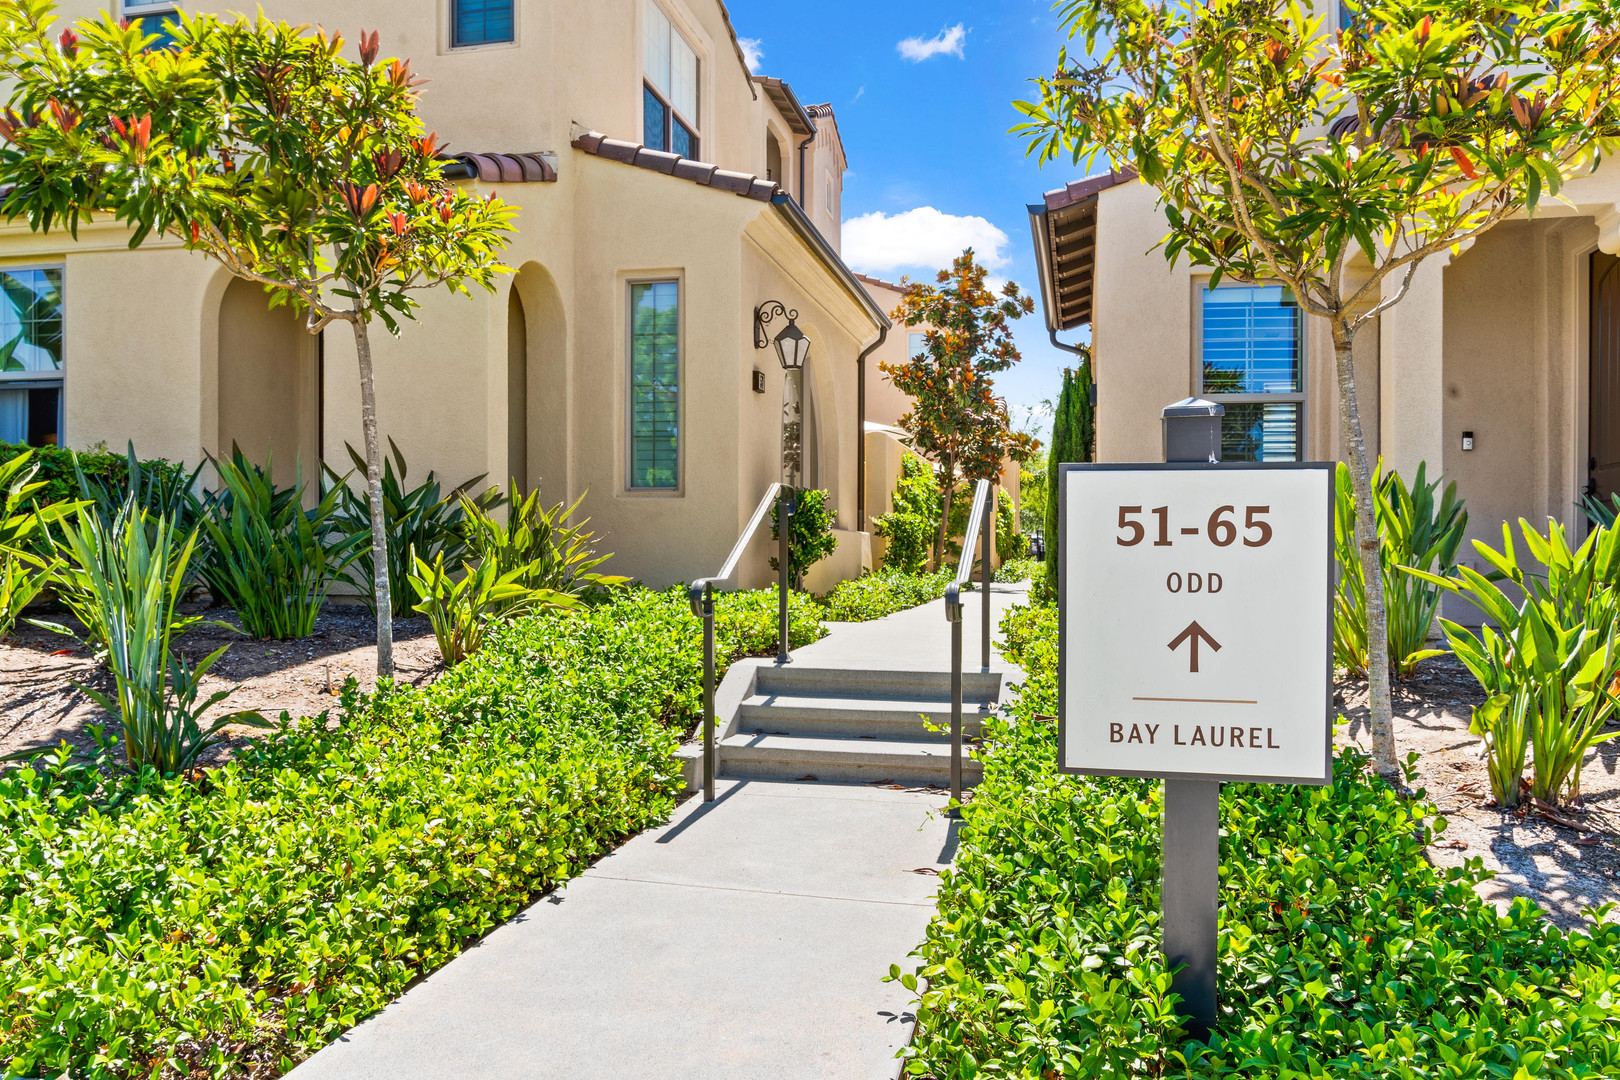 53 Bay Laurel - Irvine Walkway 1.jpg